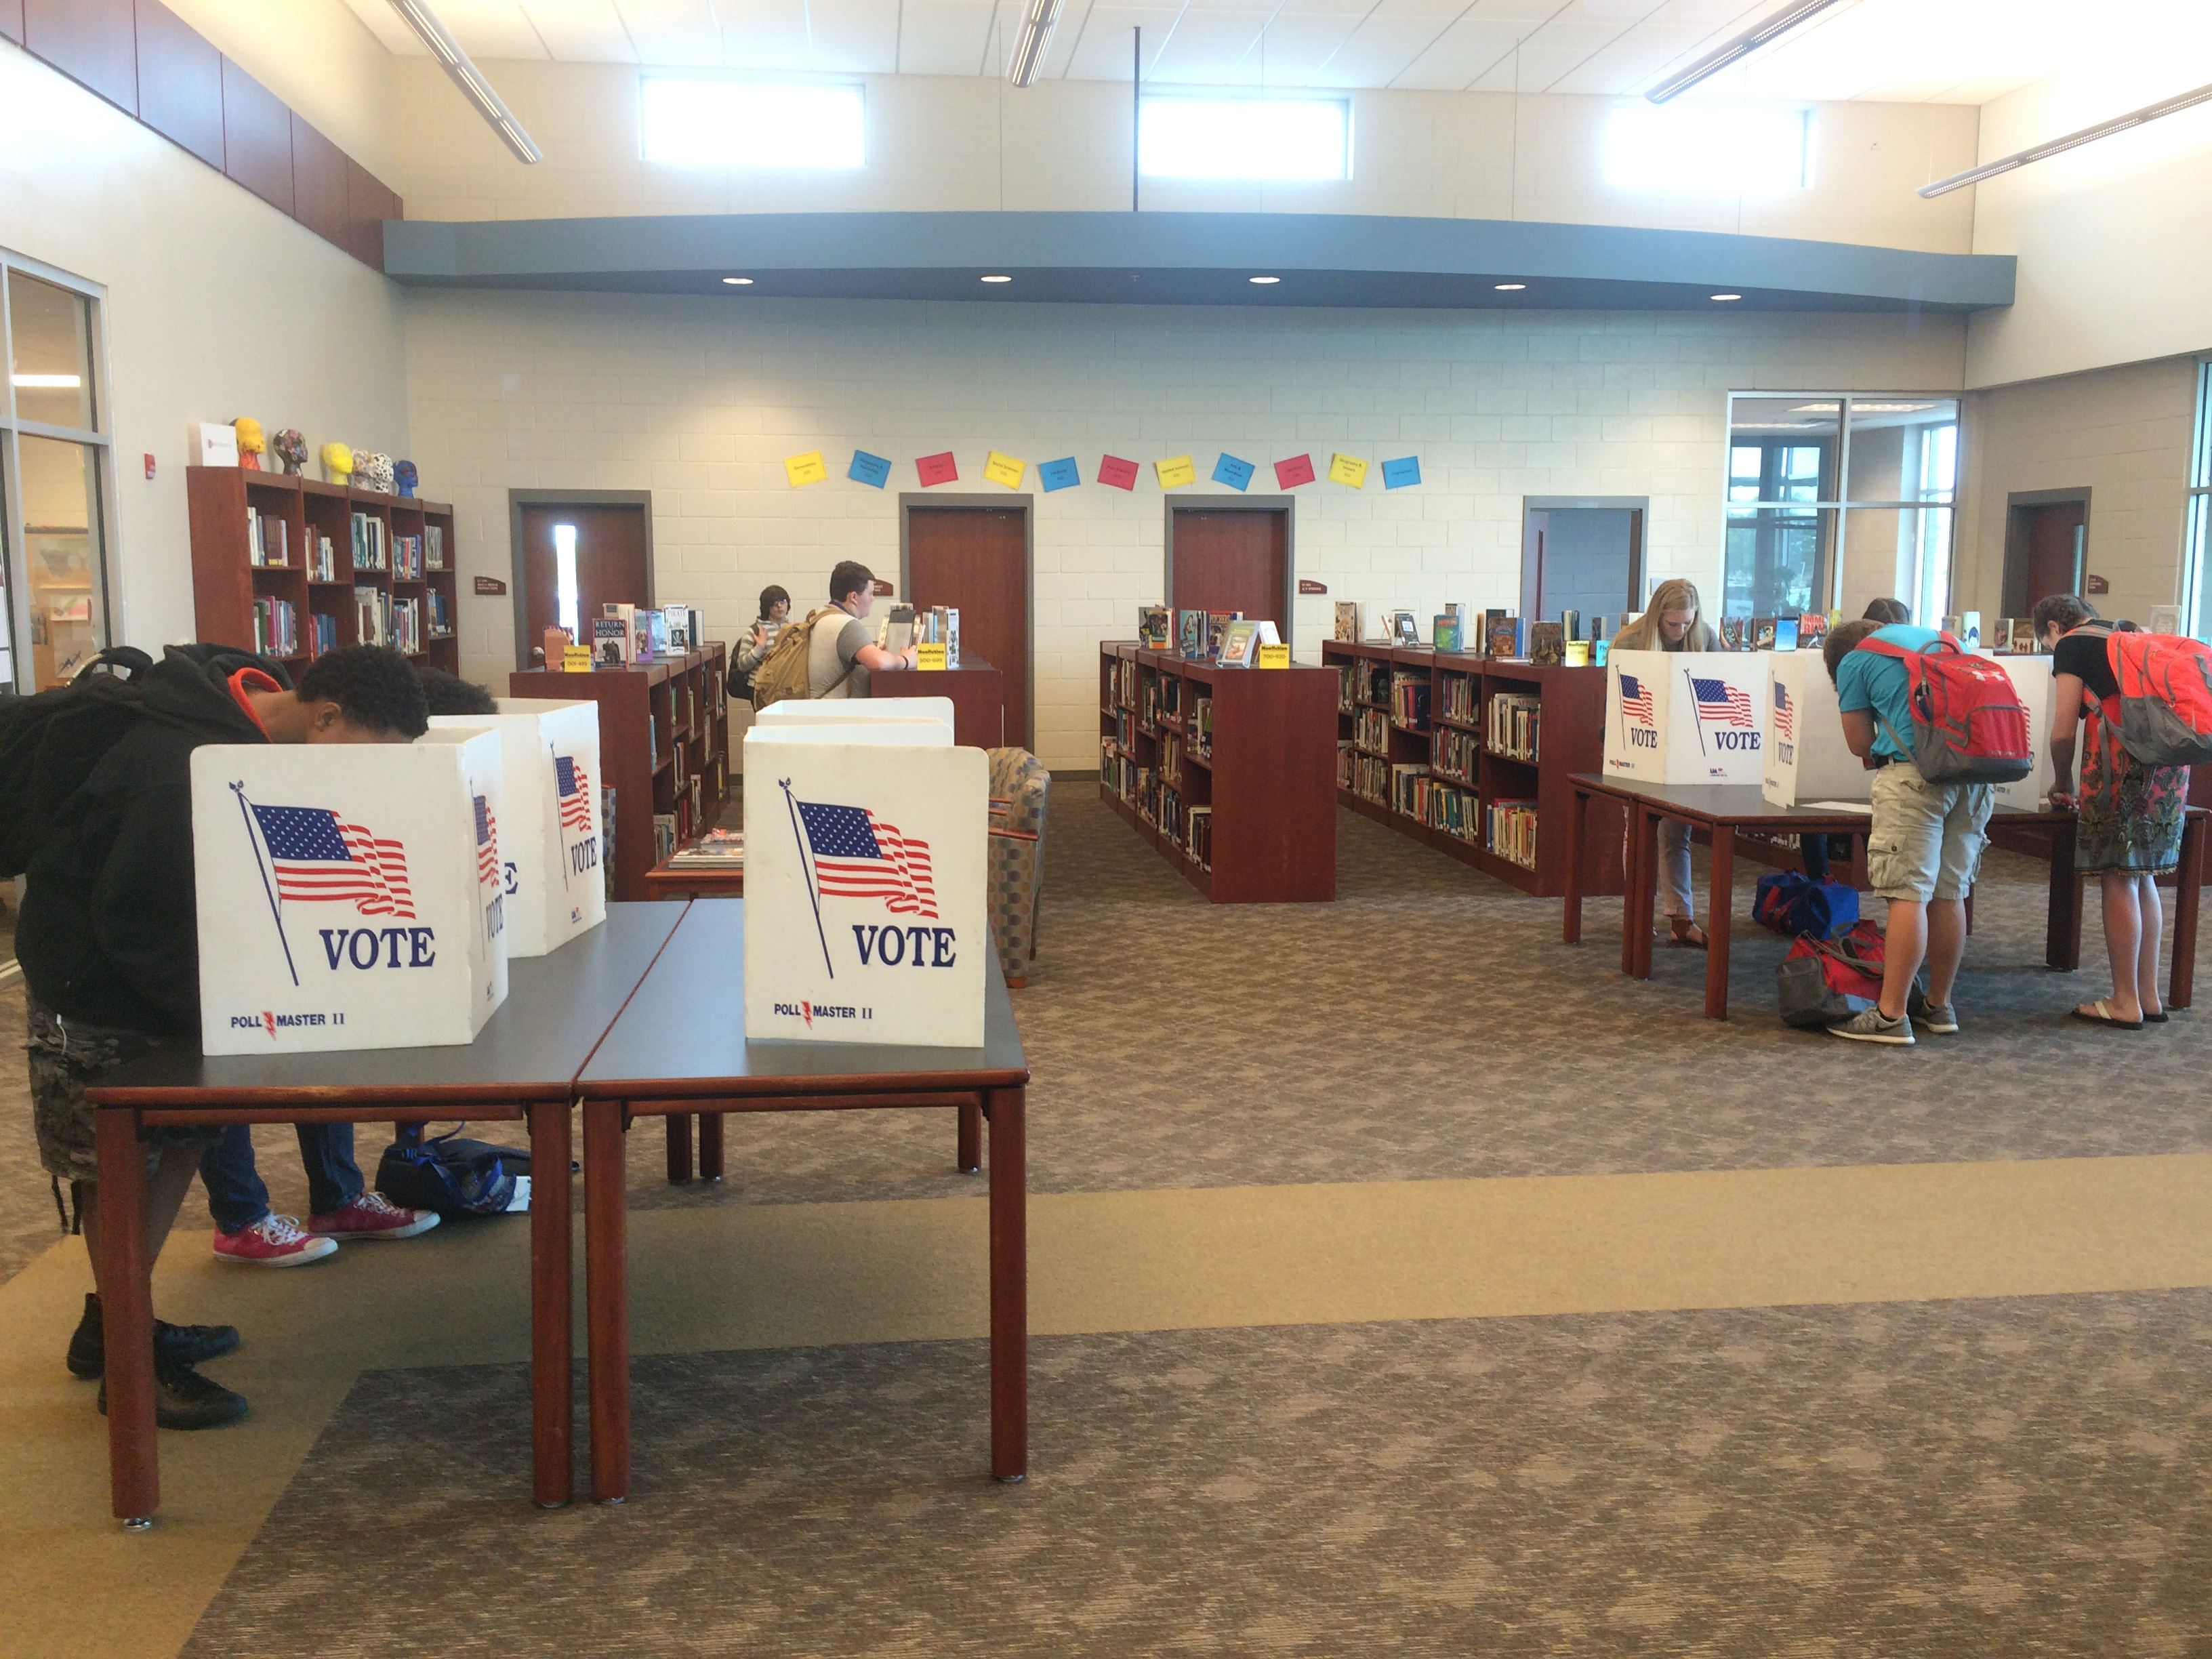 Library set up with voting ballot boxes and people voting